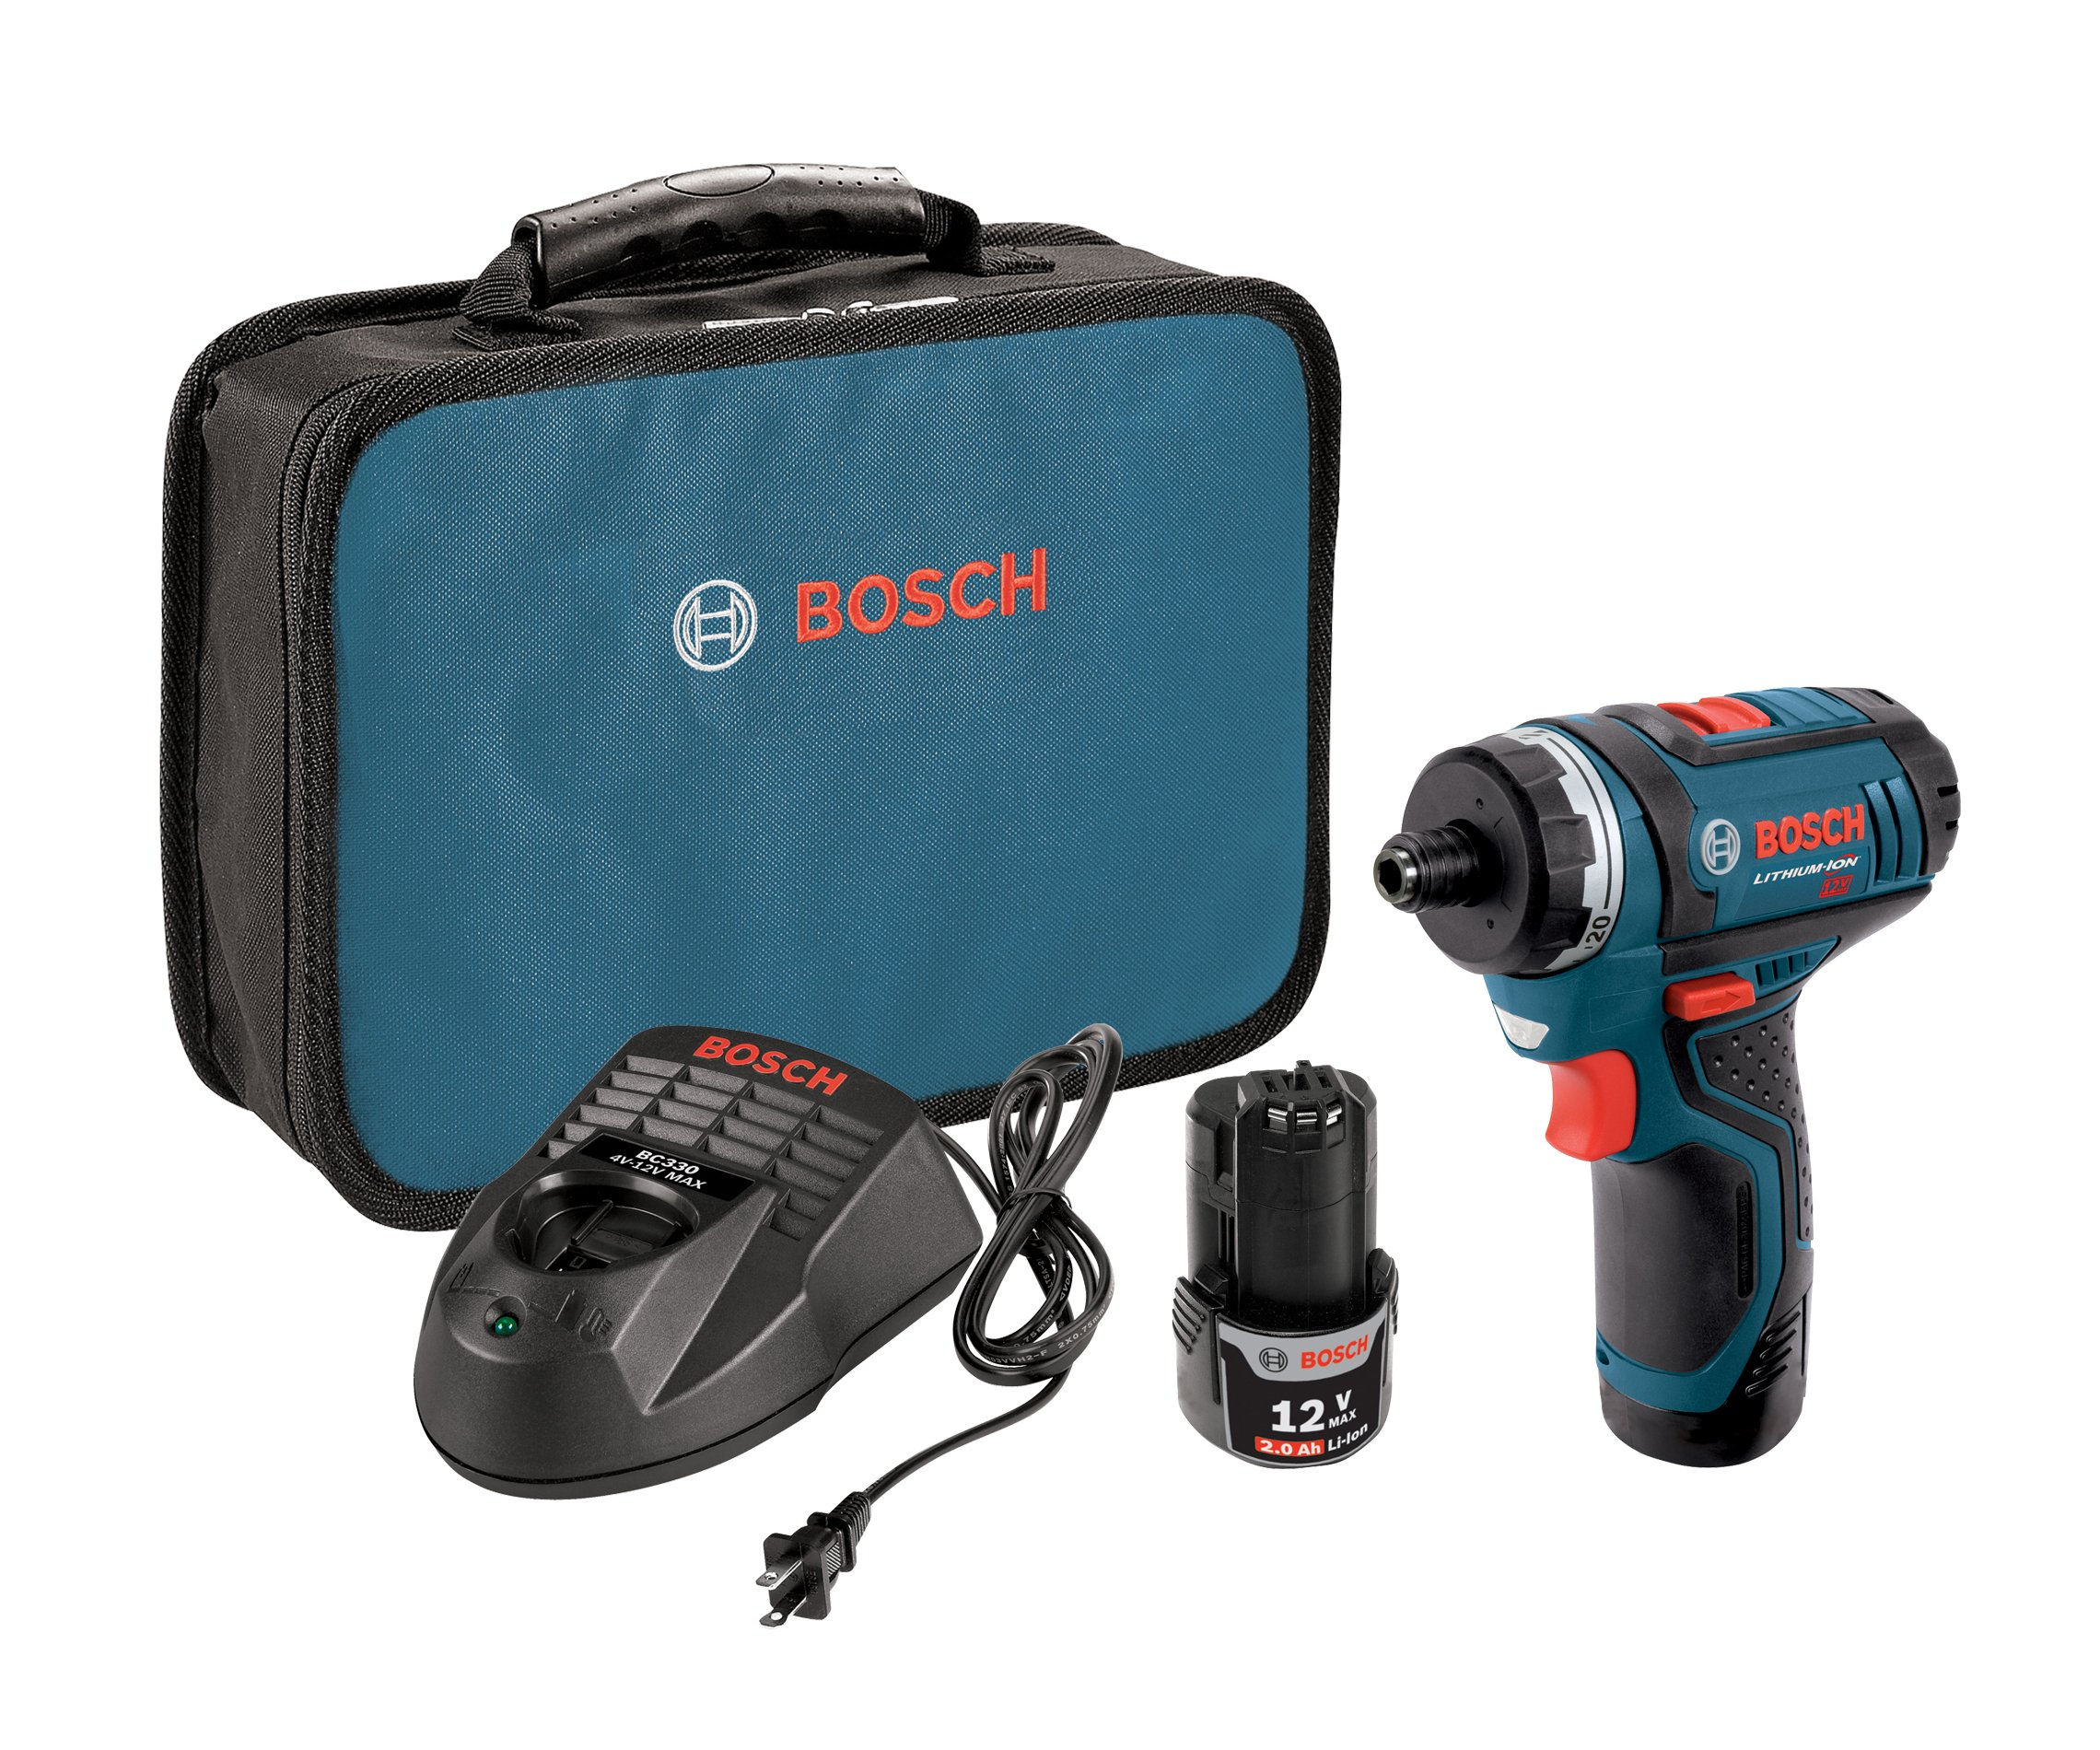 Bosch PS21-2A 12-Volt Max Lithium-Ion 2-Speed Pocket Driver Kit with 2 Batteries, Charger and Case by Bosch (Image #1)